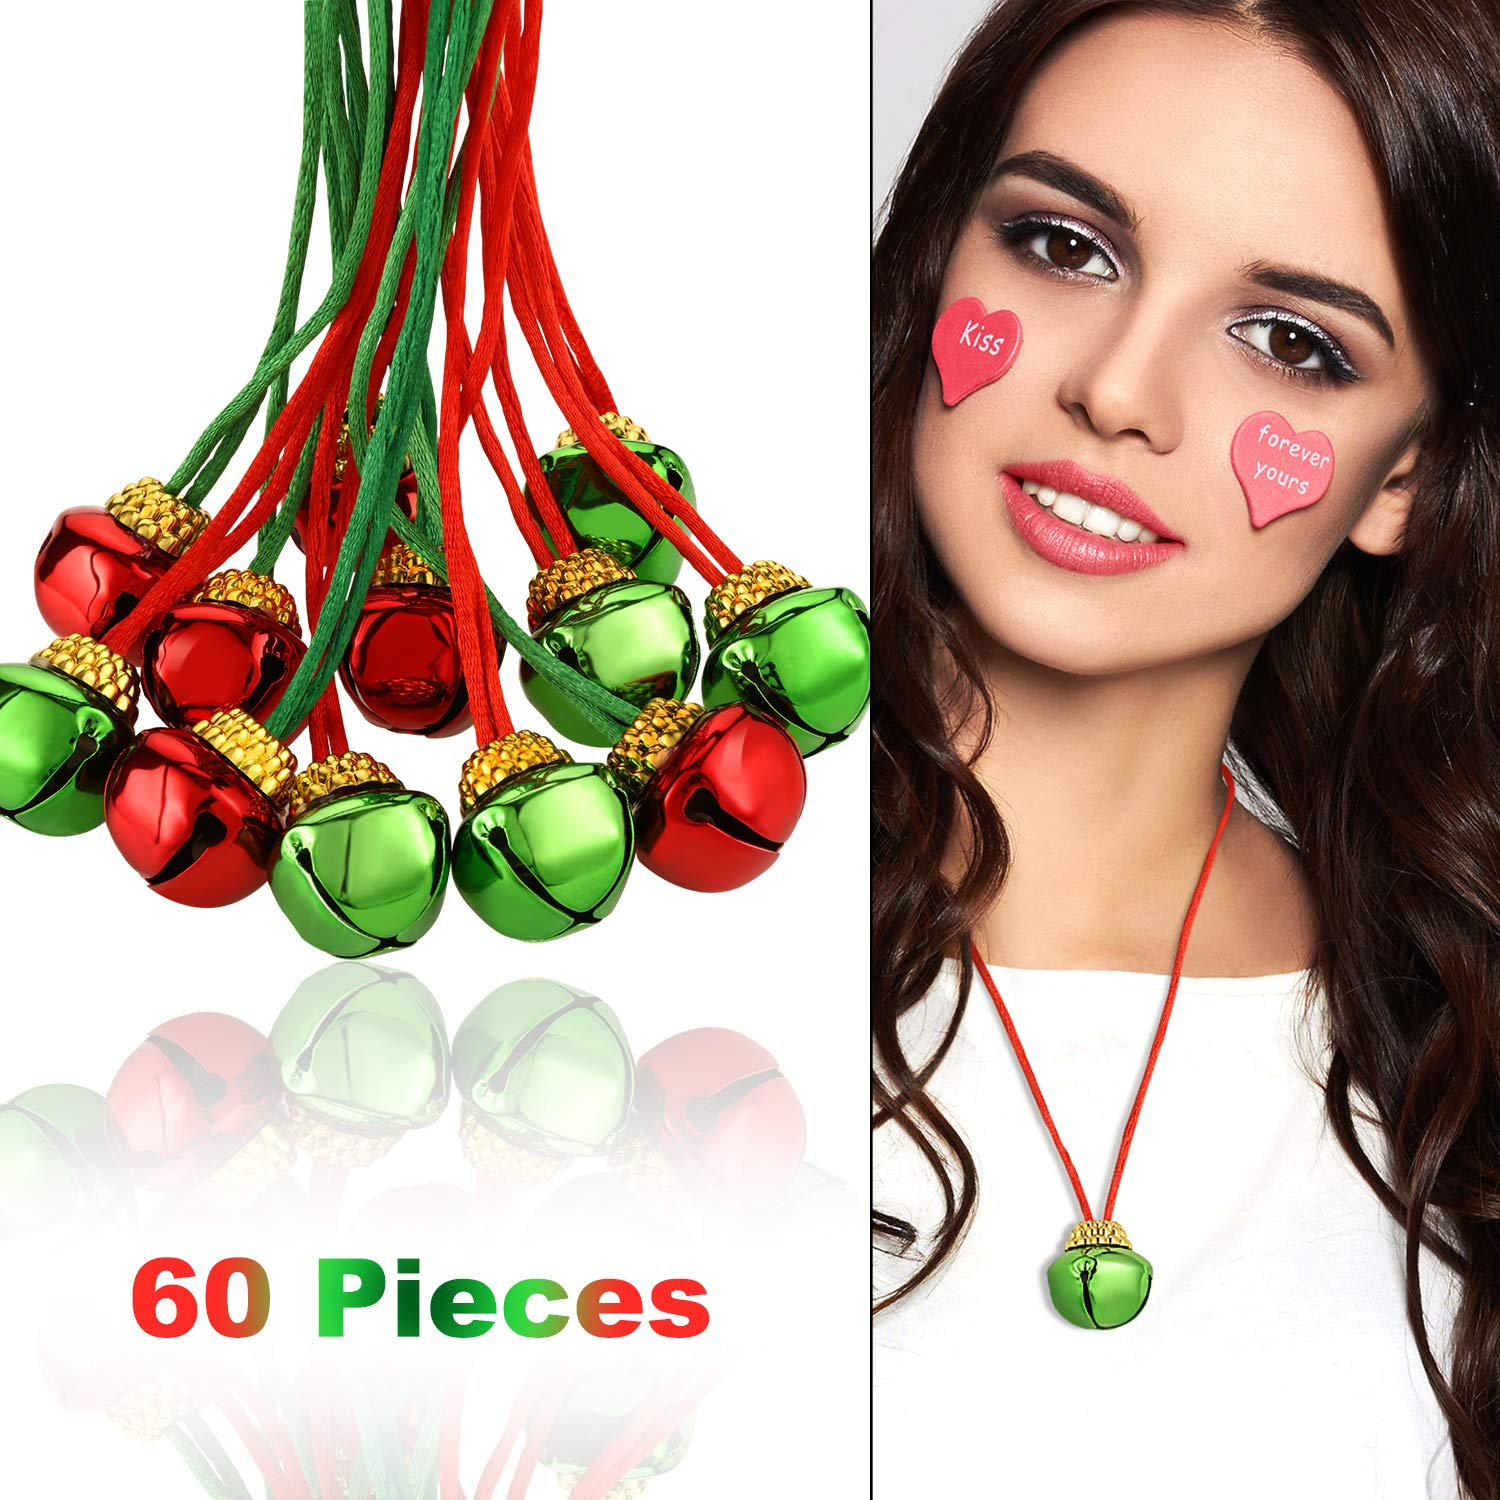 60 Pieces Christmas Bell Necklaces Christmas Holiday Necklaces for Christmas Supplies, Red and Green Colors by Gejoy